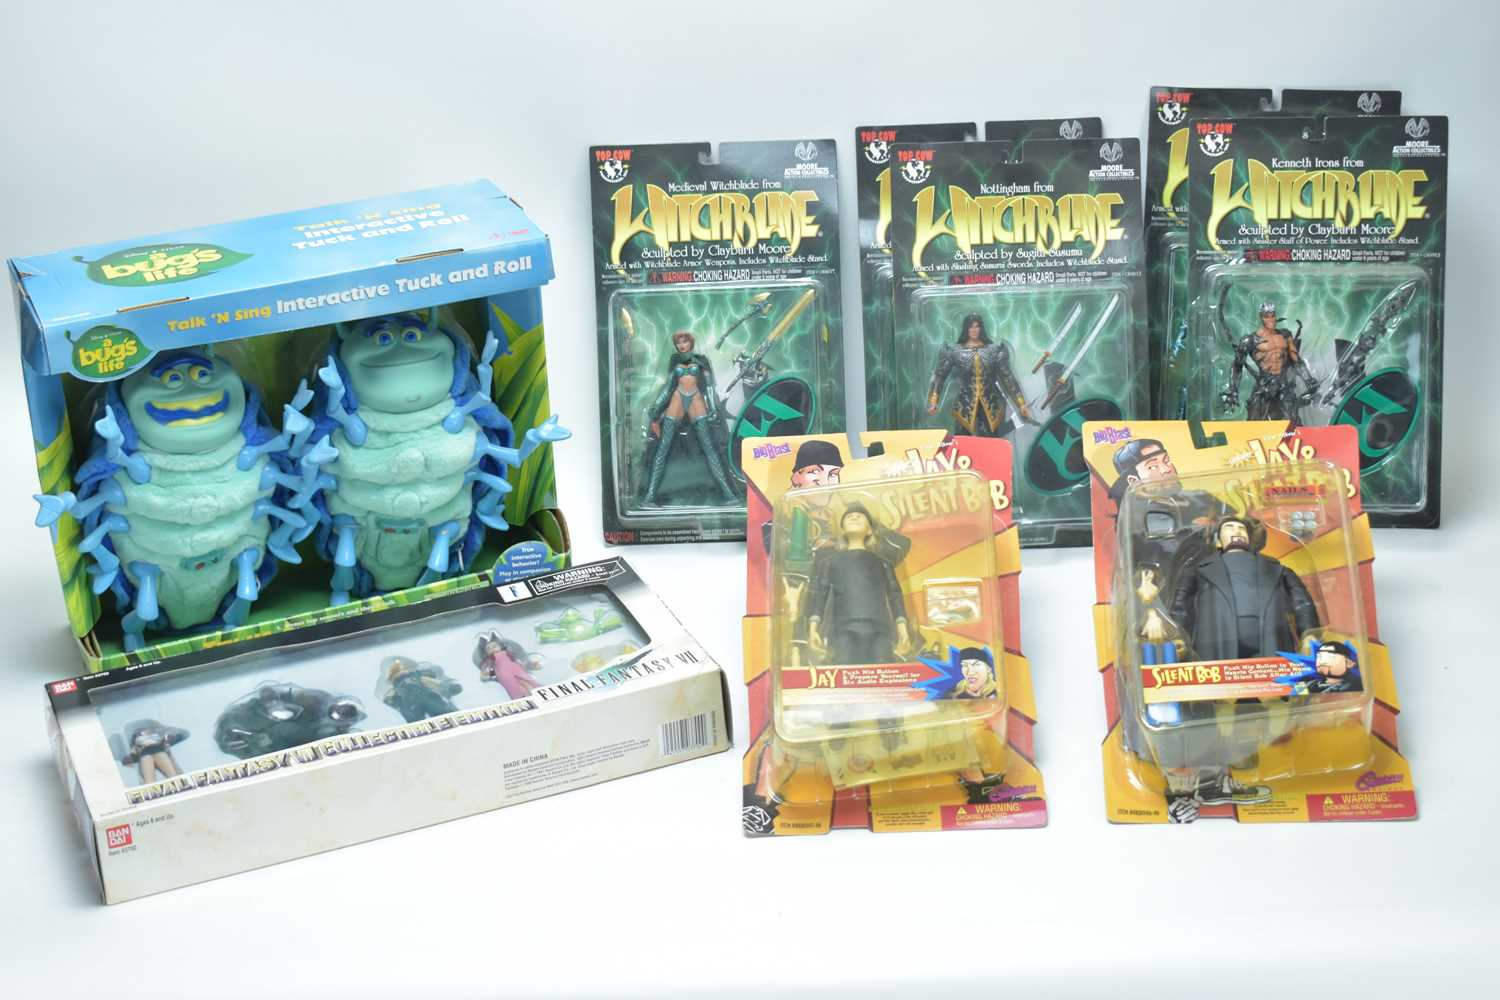 Lot 12 - Witchblade & other fantasy figurines